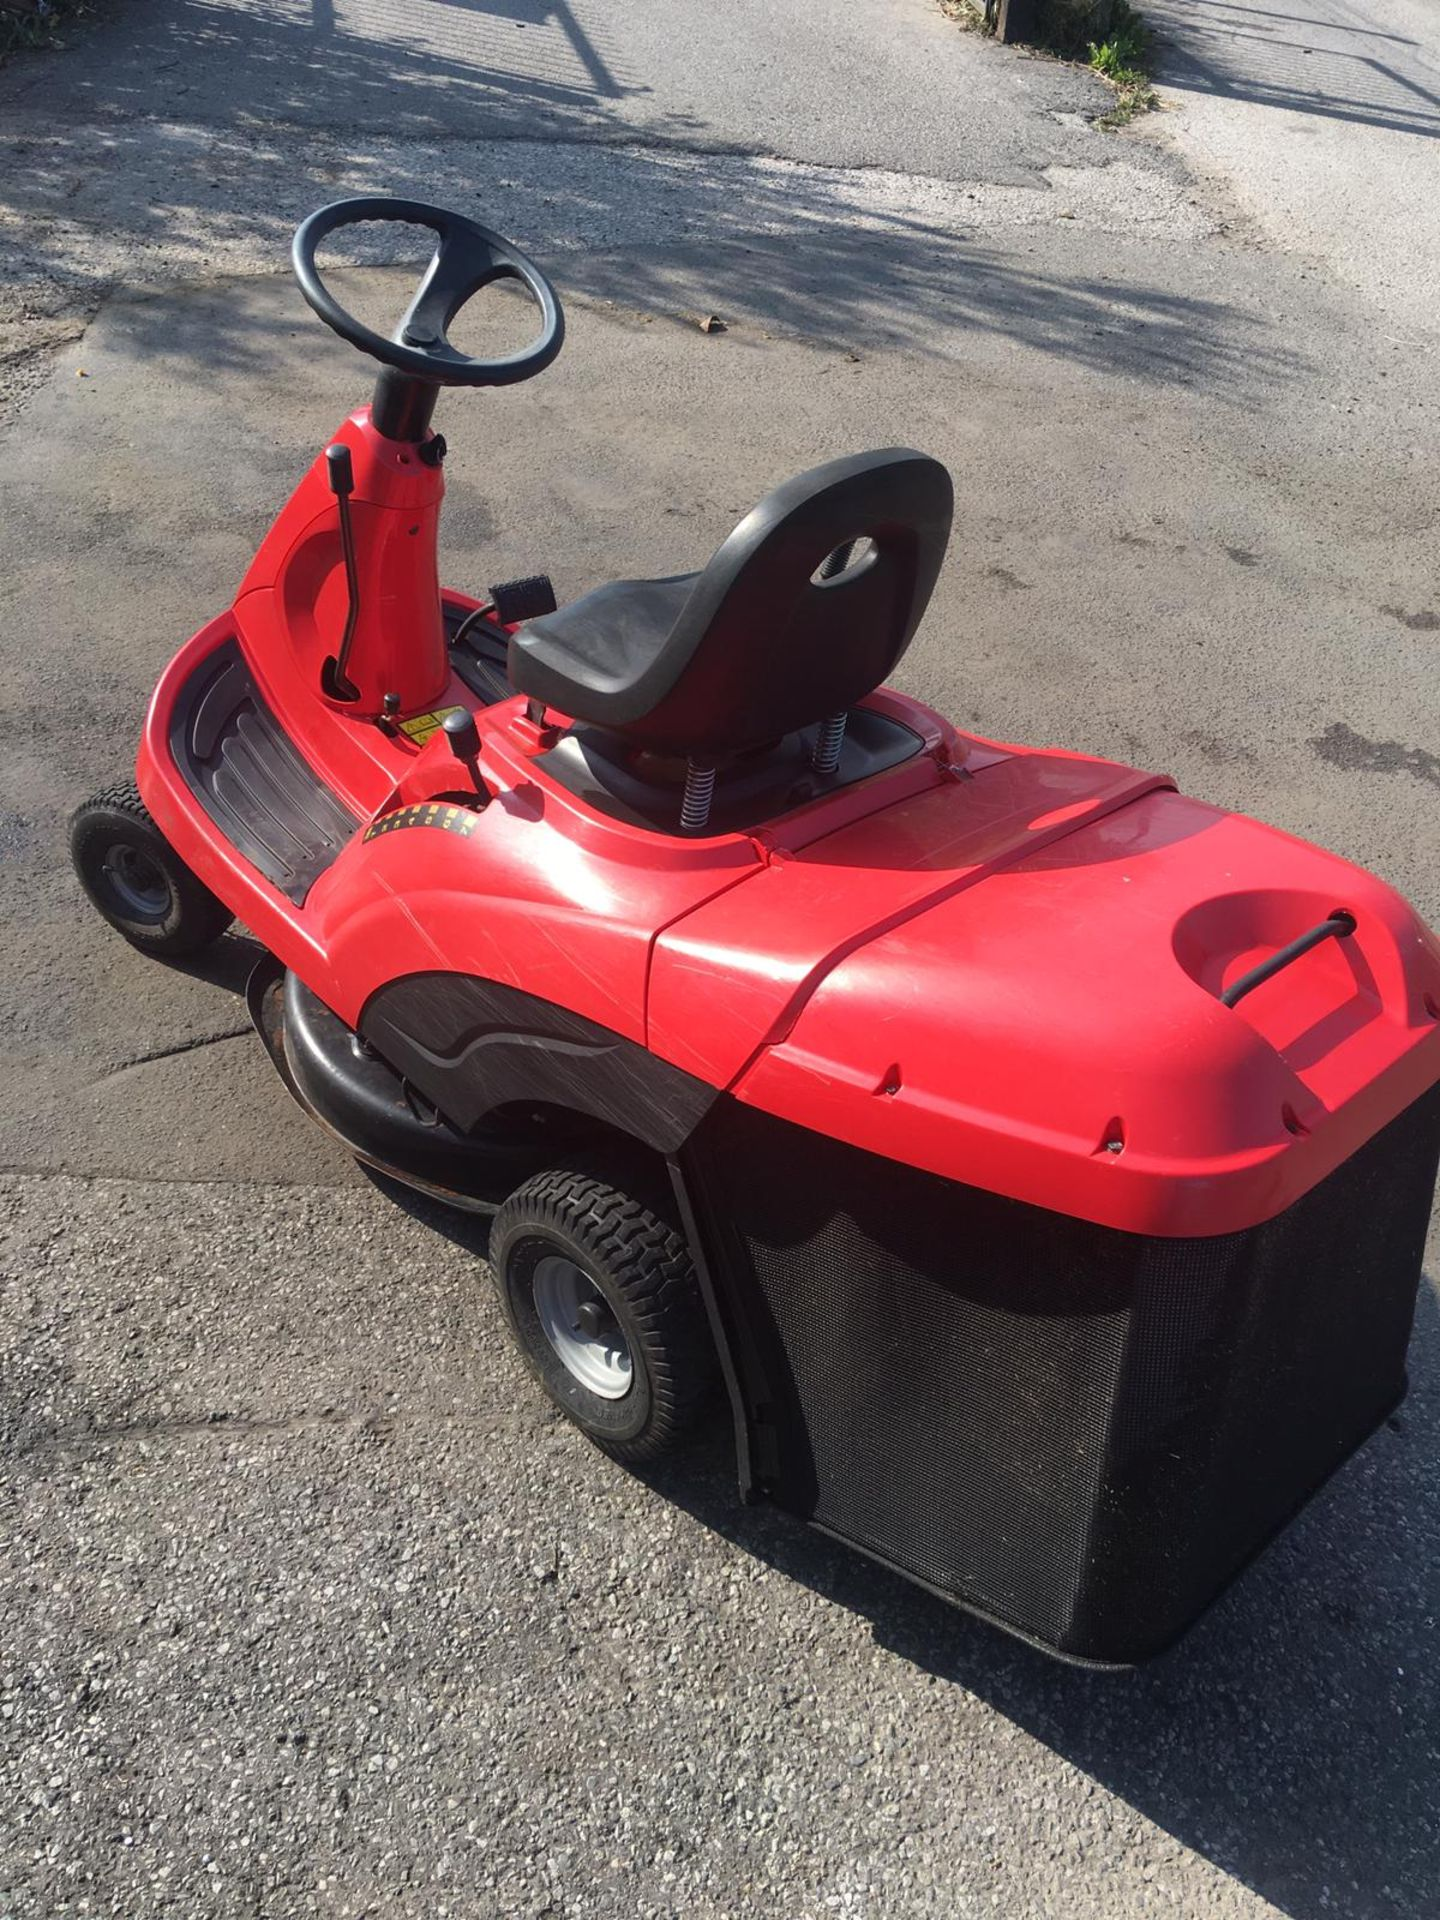 Lot 43 - CASTLEGARDEN F72 RIDE ON LAWN MOWER WITH REAR COLLECTOR, YEAR 1998, 5.2KW, 163 KG *NO VAT*